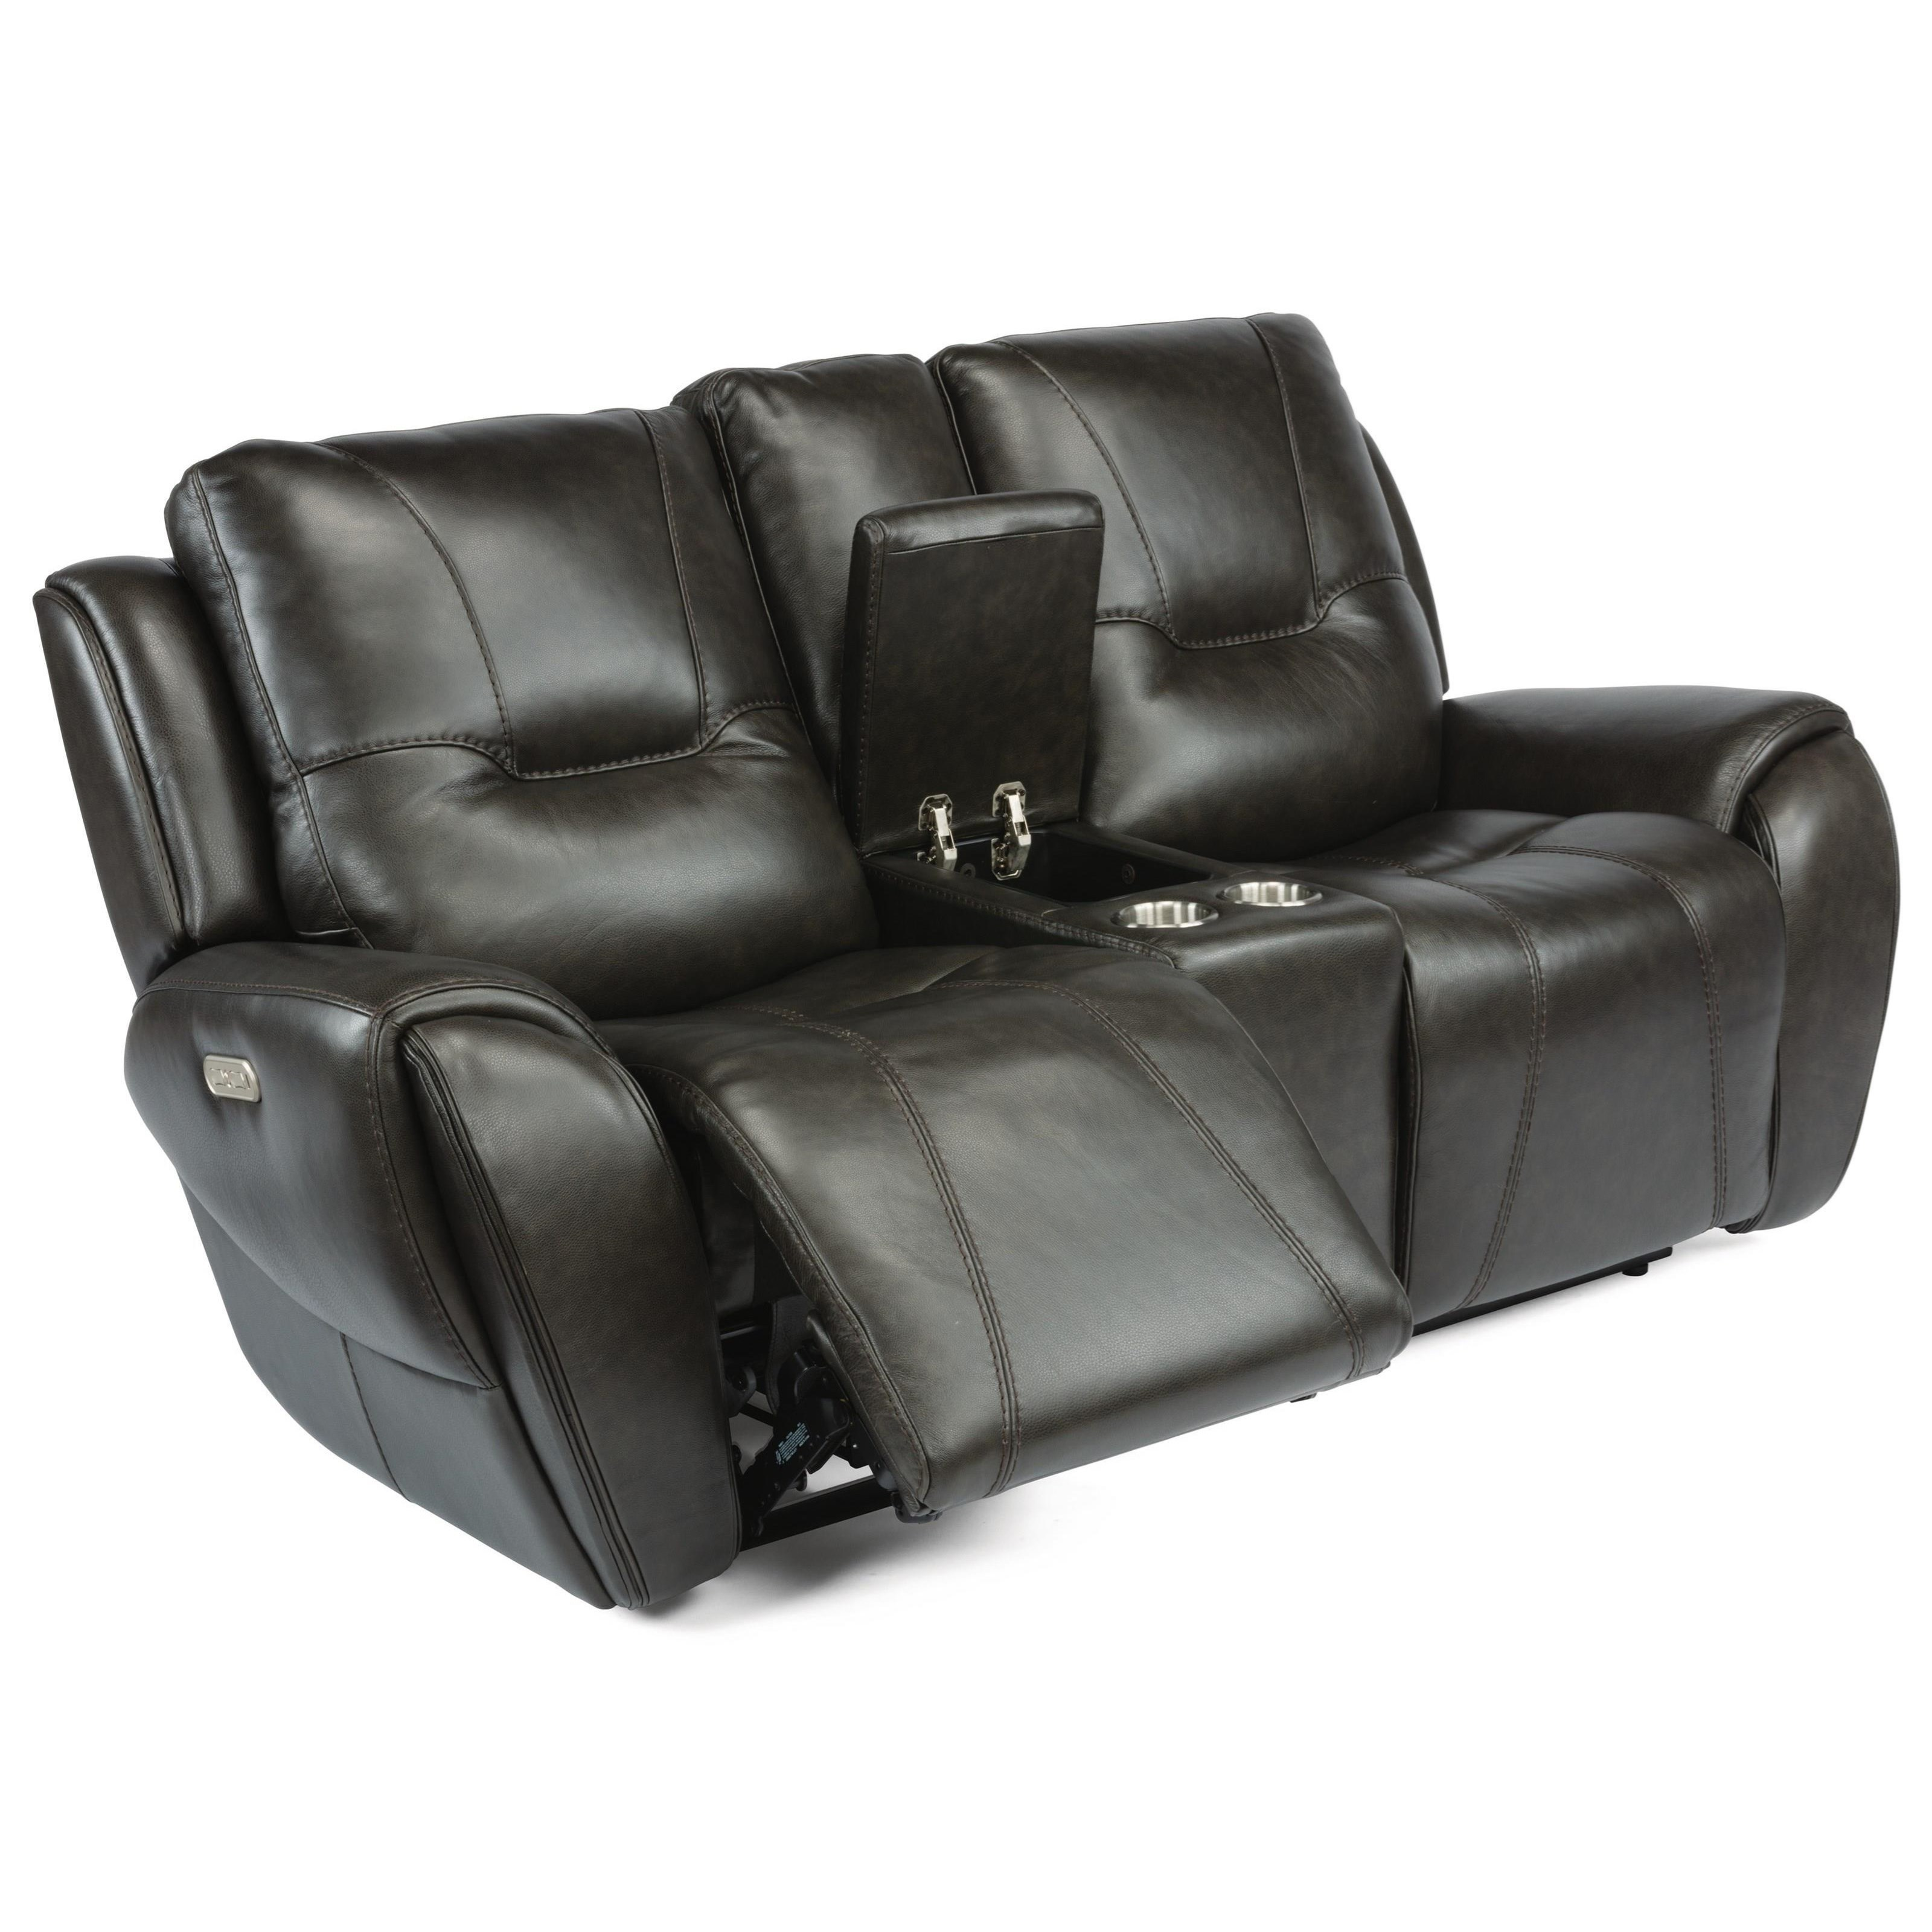 Contemporary Power Reclining Console Loveseat with Power Headrests and Cup Holders